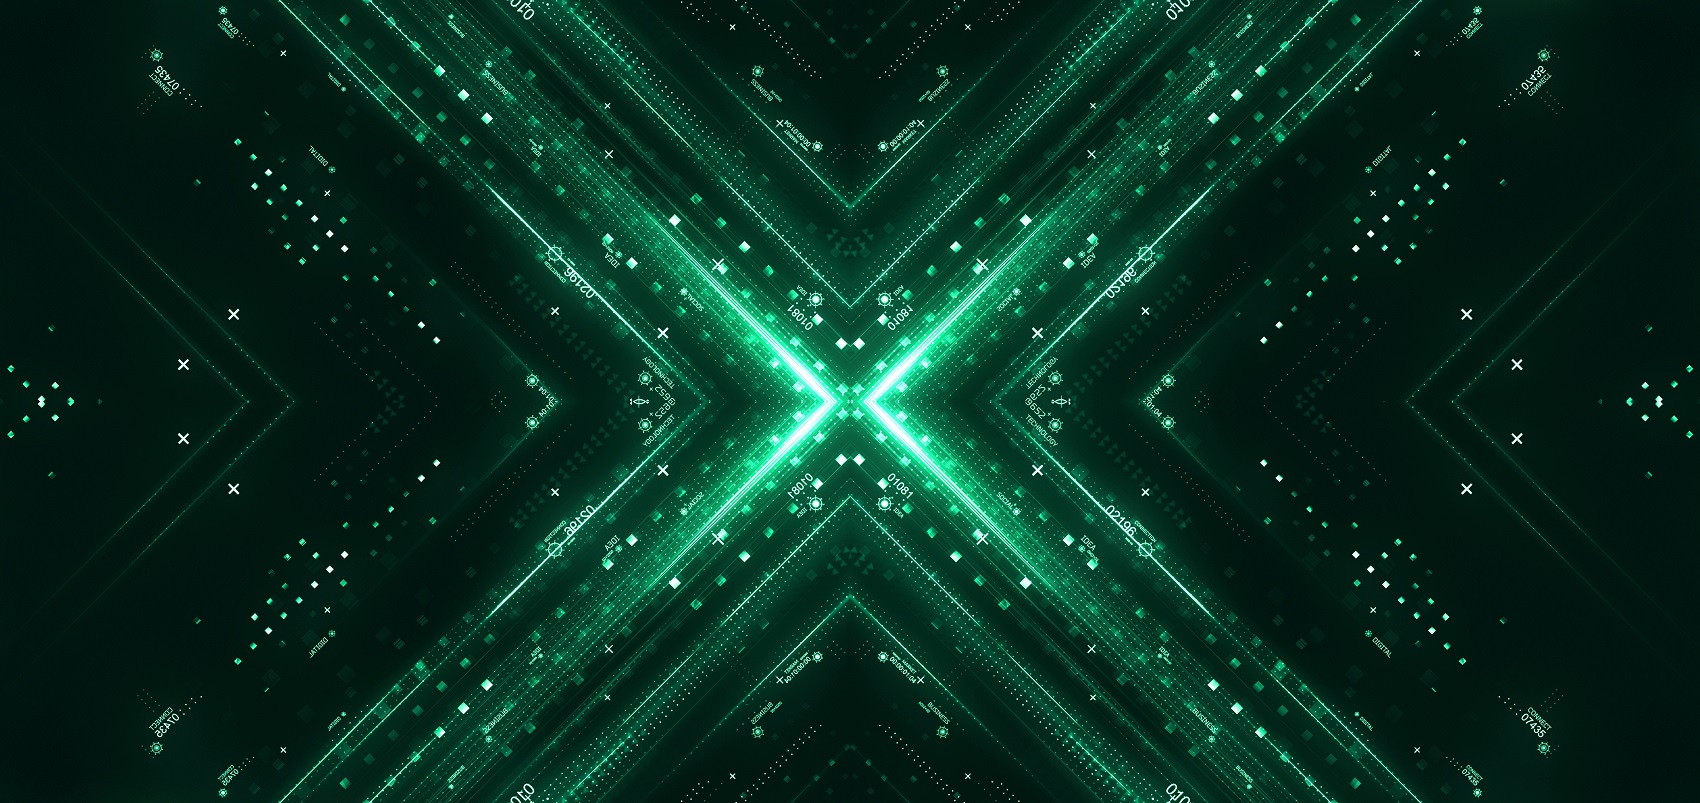 How Do You Get ROI From Energy-Hungry HPC? TechNative